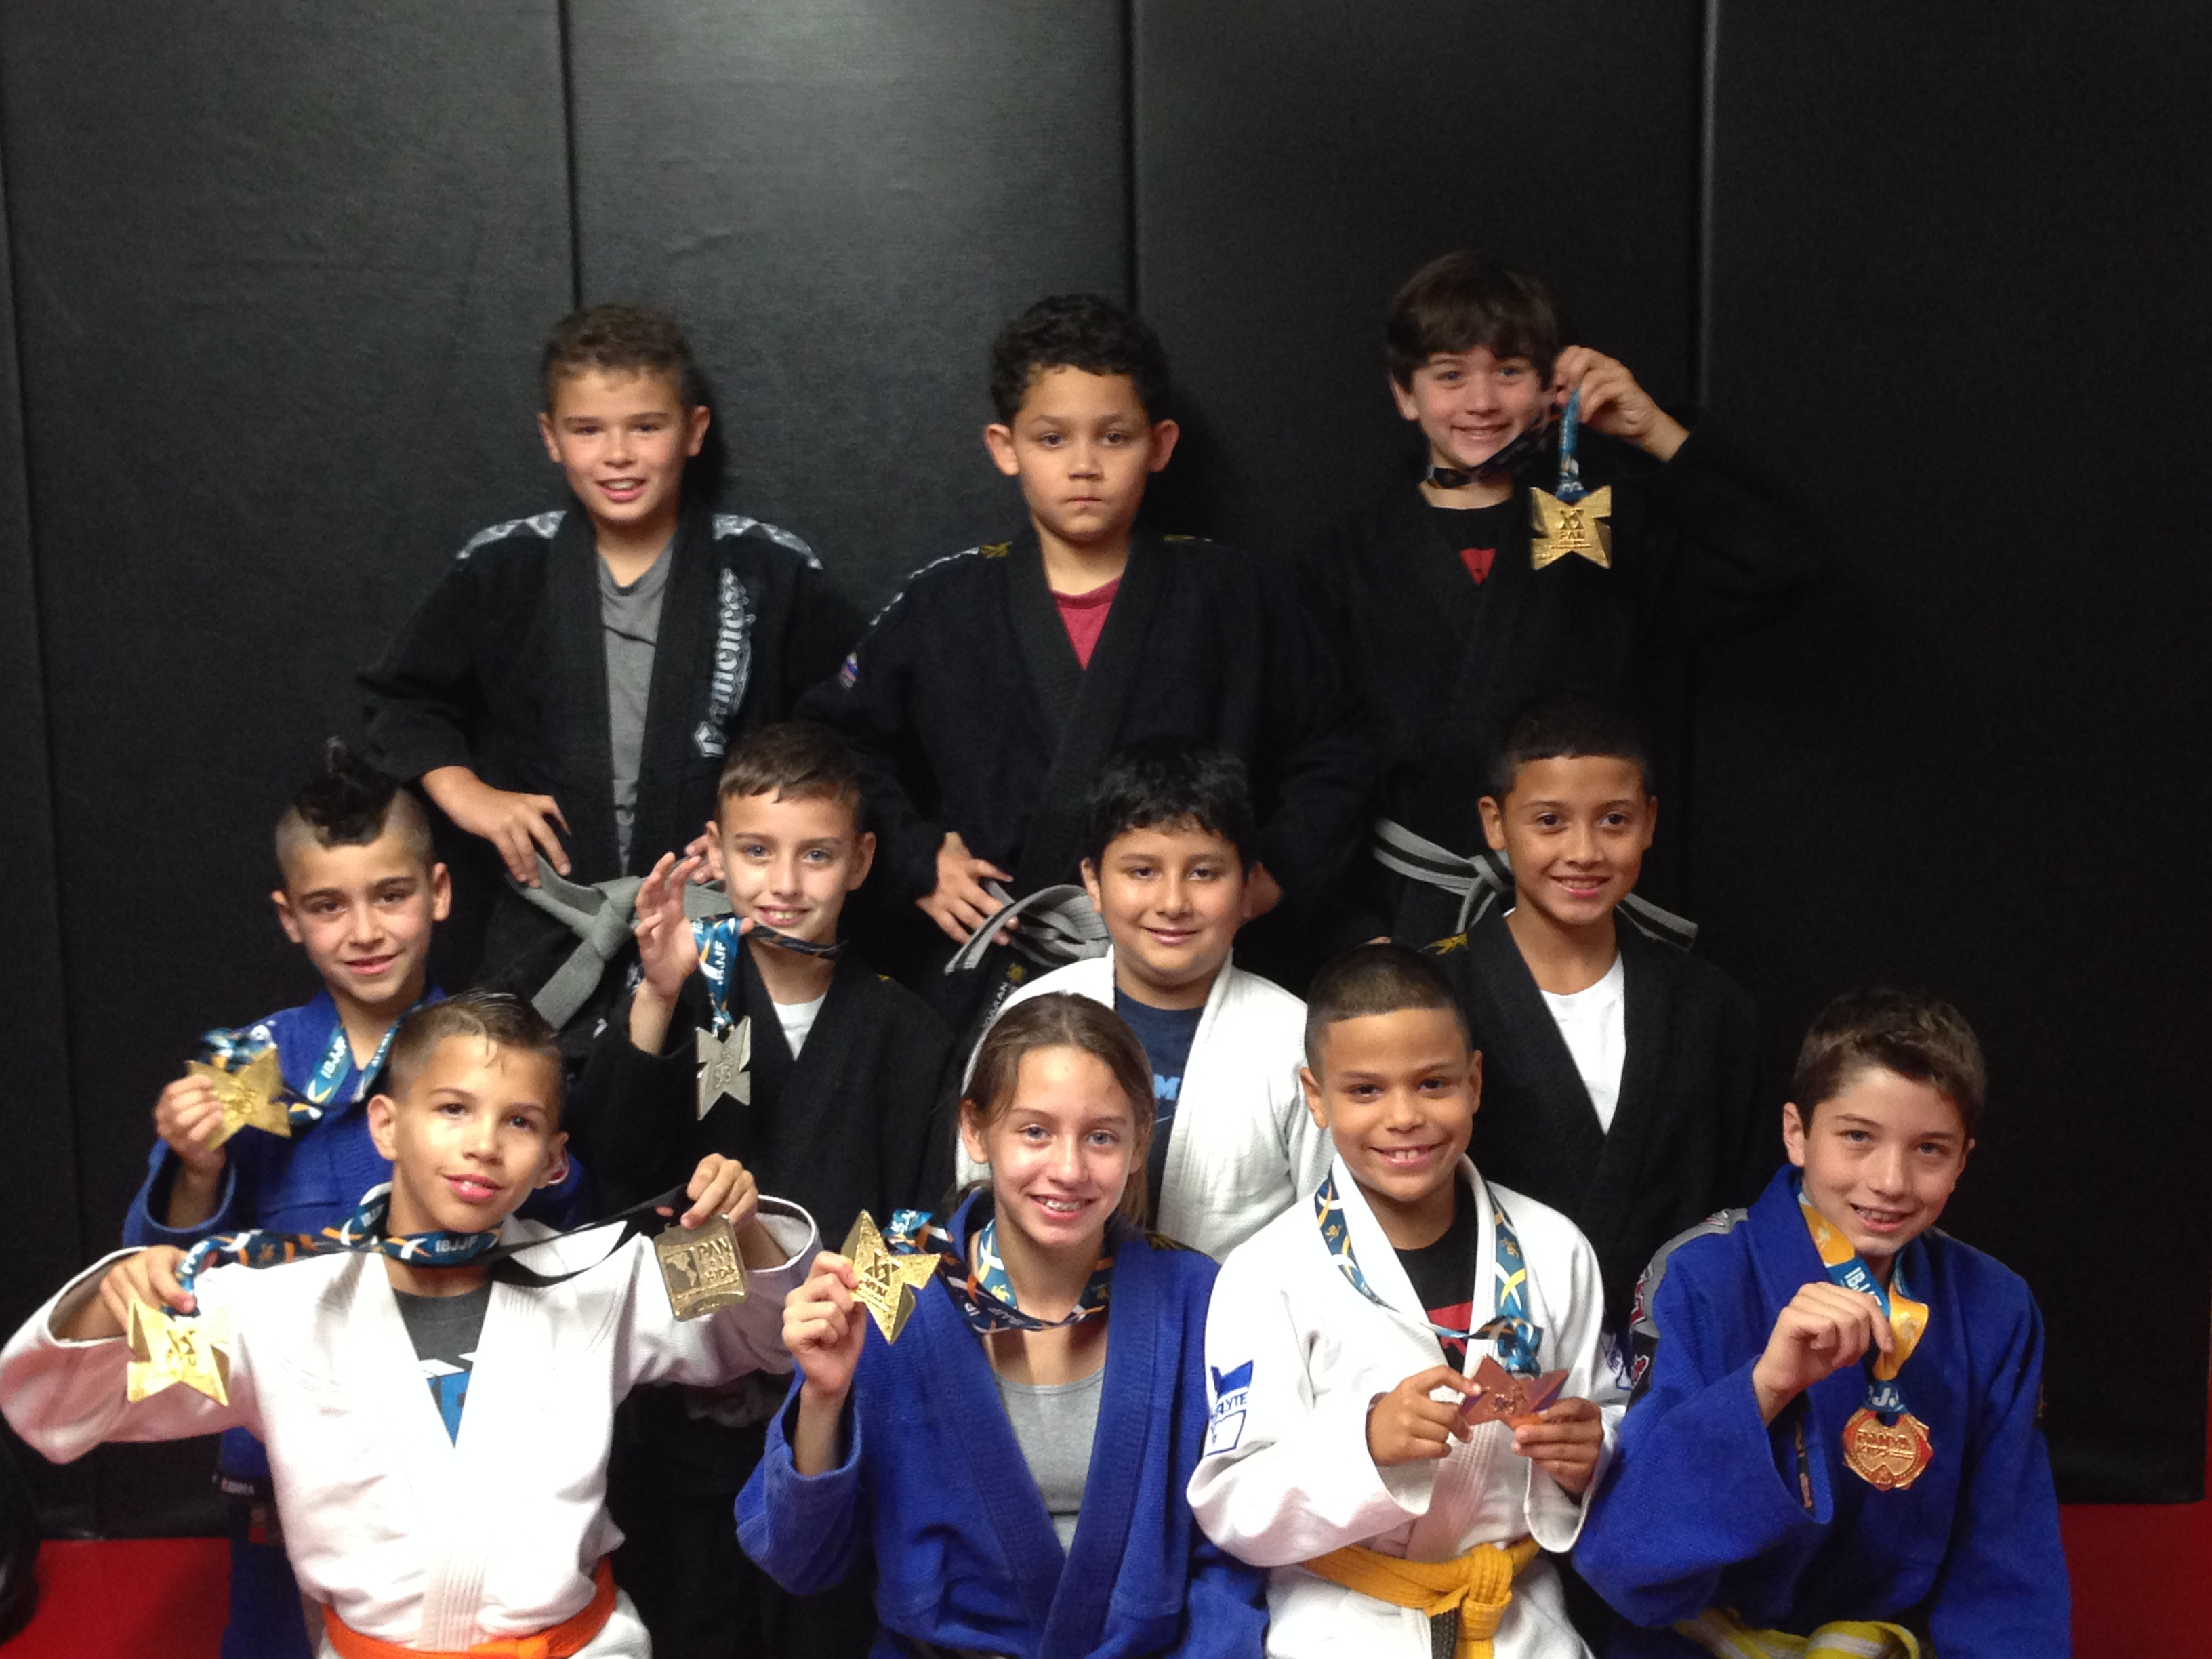 The Alliance Miami WMB kids team at the 2014 IBJJF Pan Kids. Photo: Personal Archive